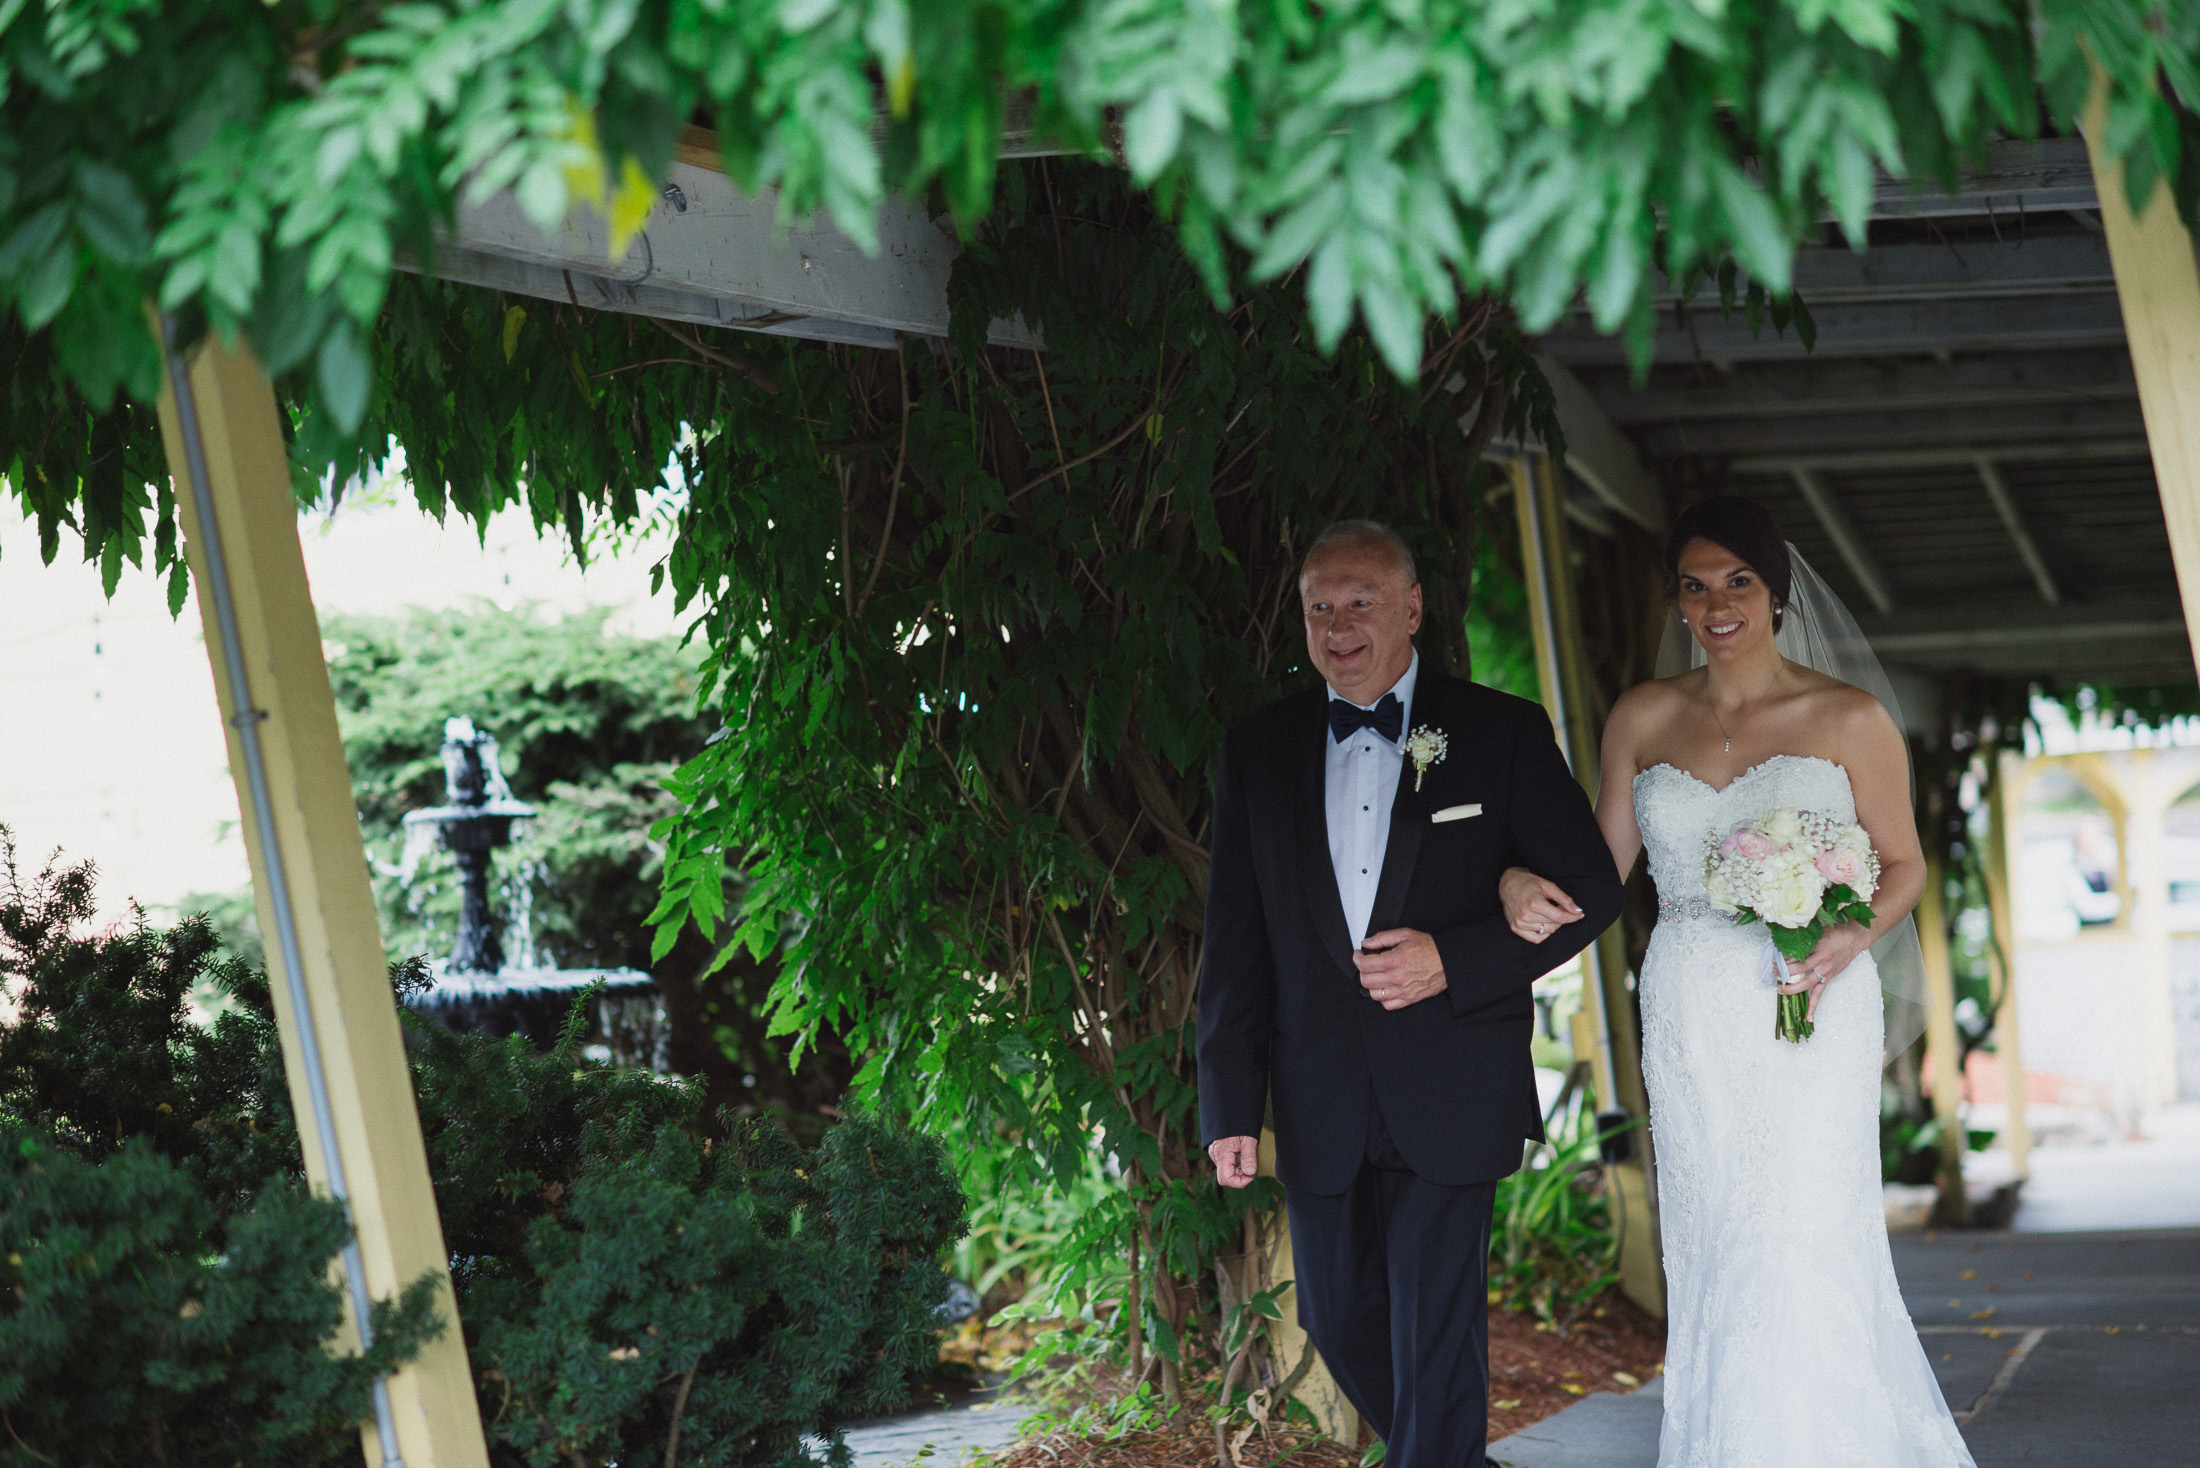 NH Wedding Photography: Bedford processional